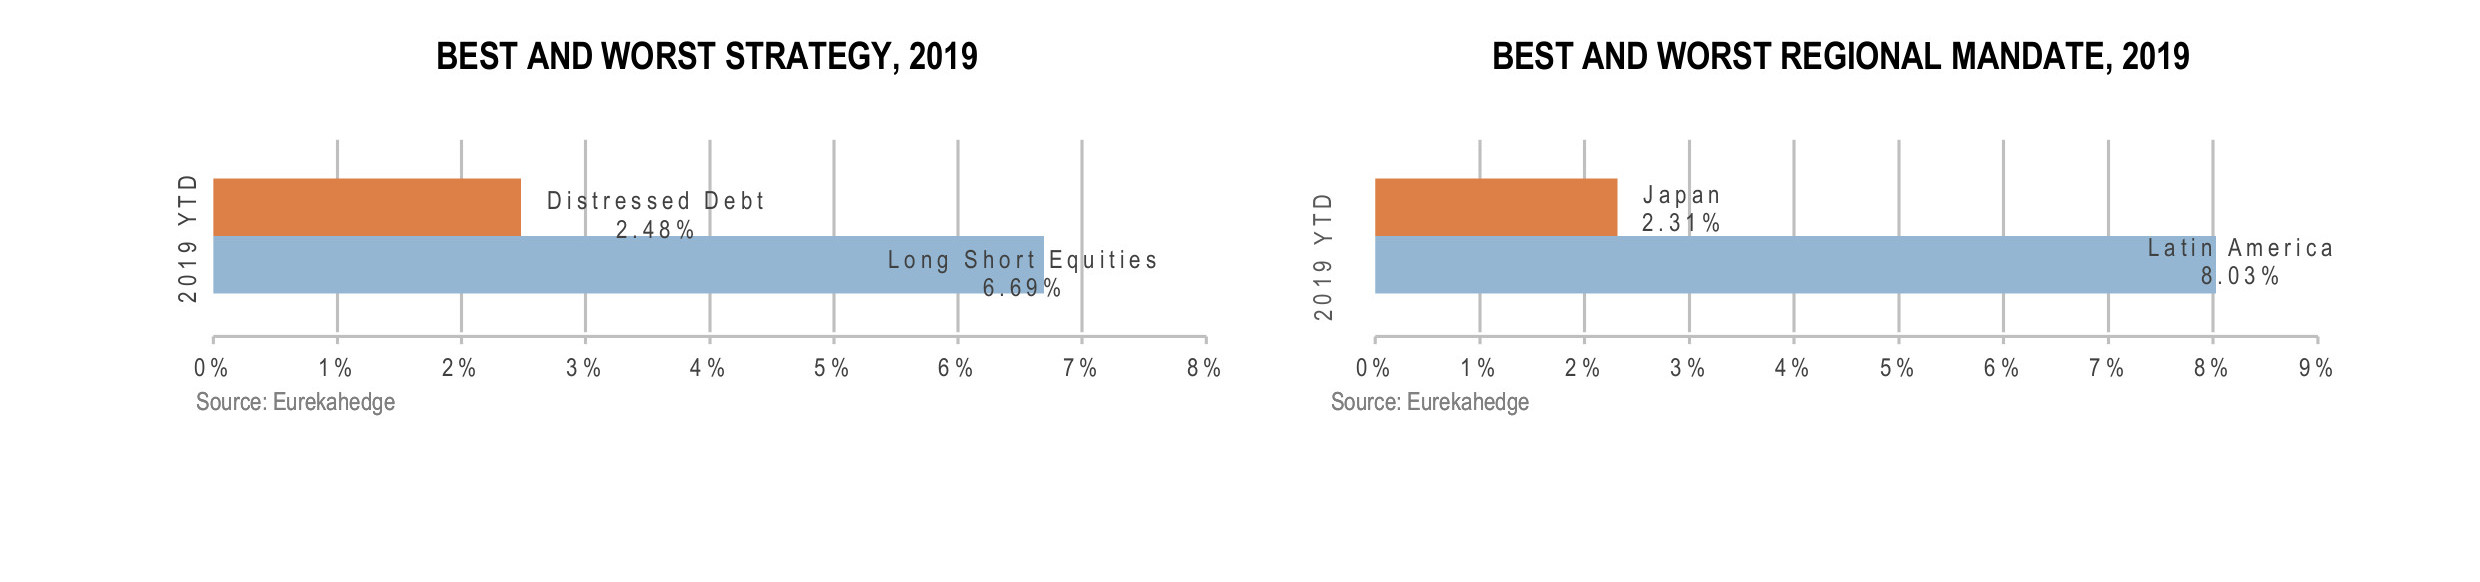 Global Hedge Funds Infographic August 2019 - best and worst strategy and regional mandate 2019